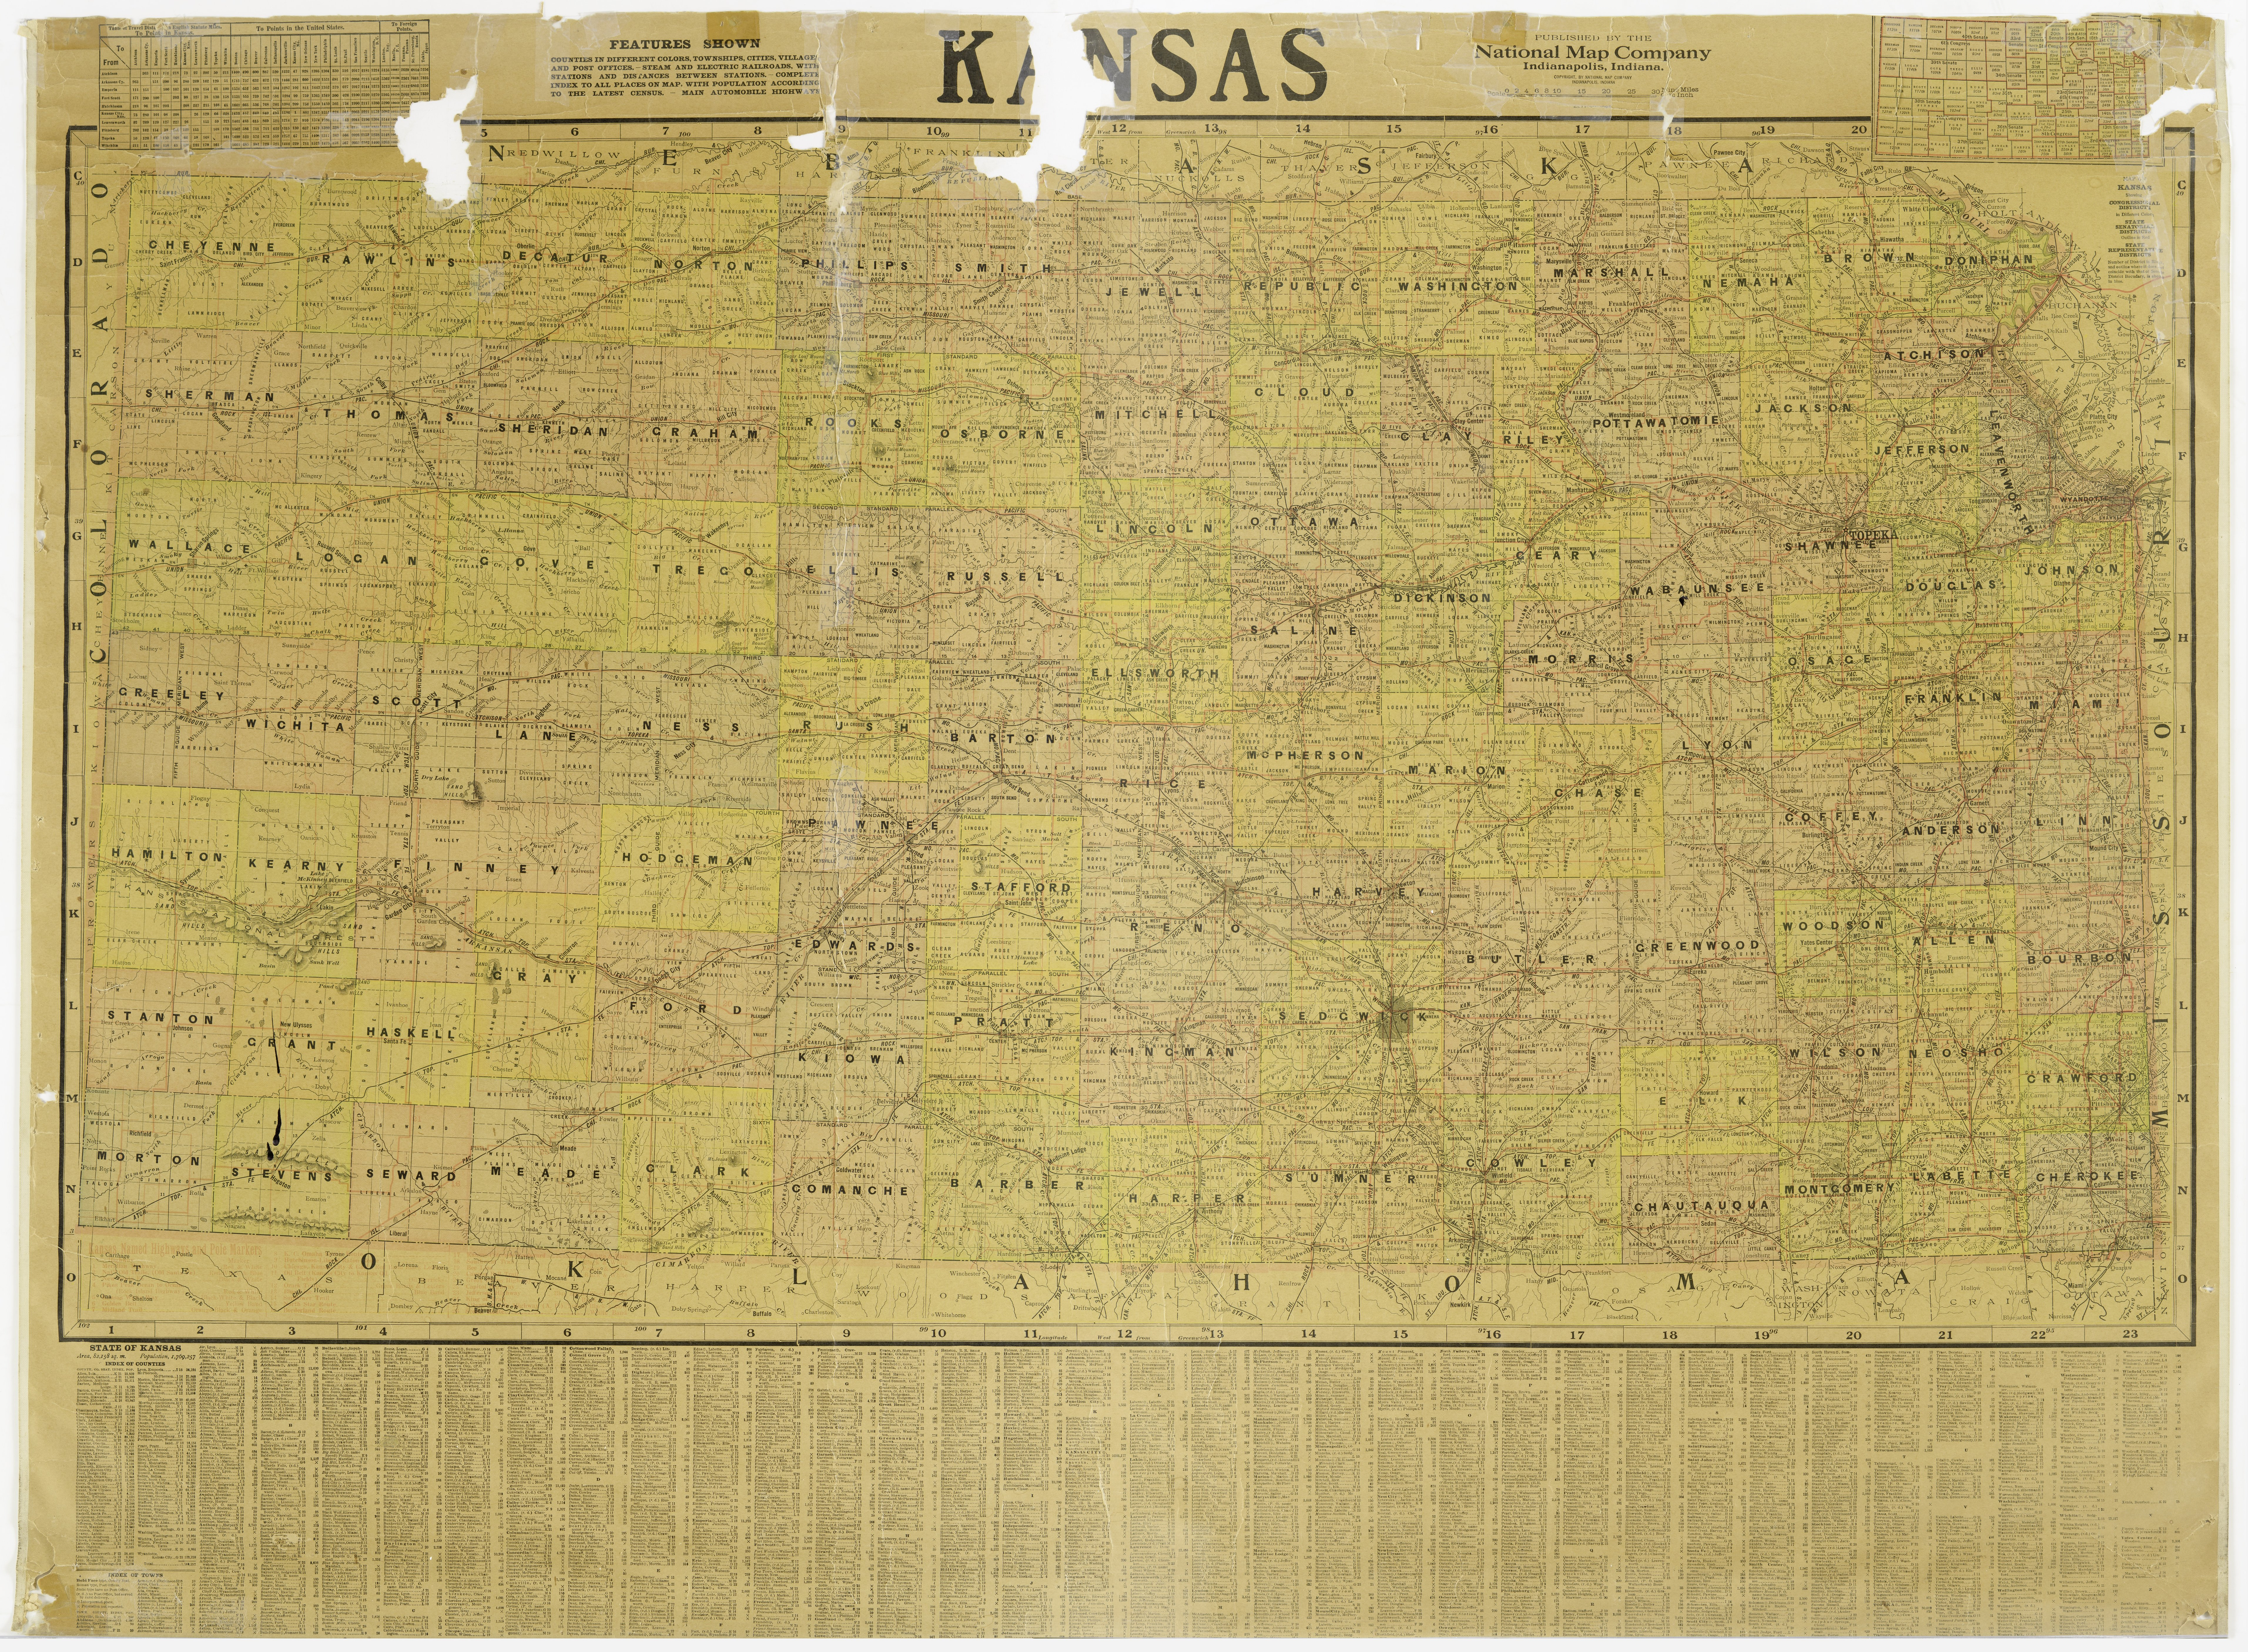 Map of the state of Kansas